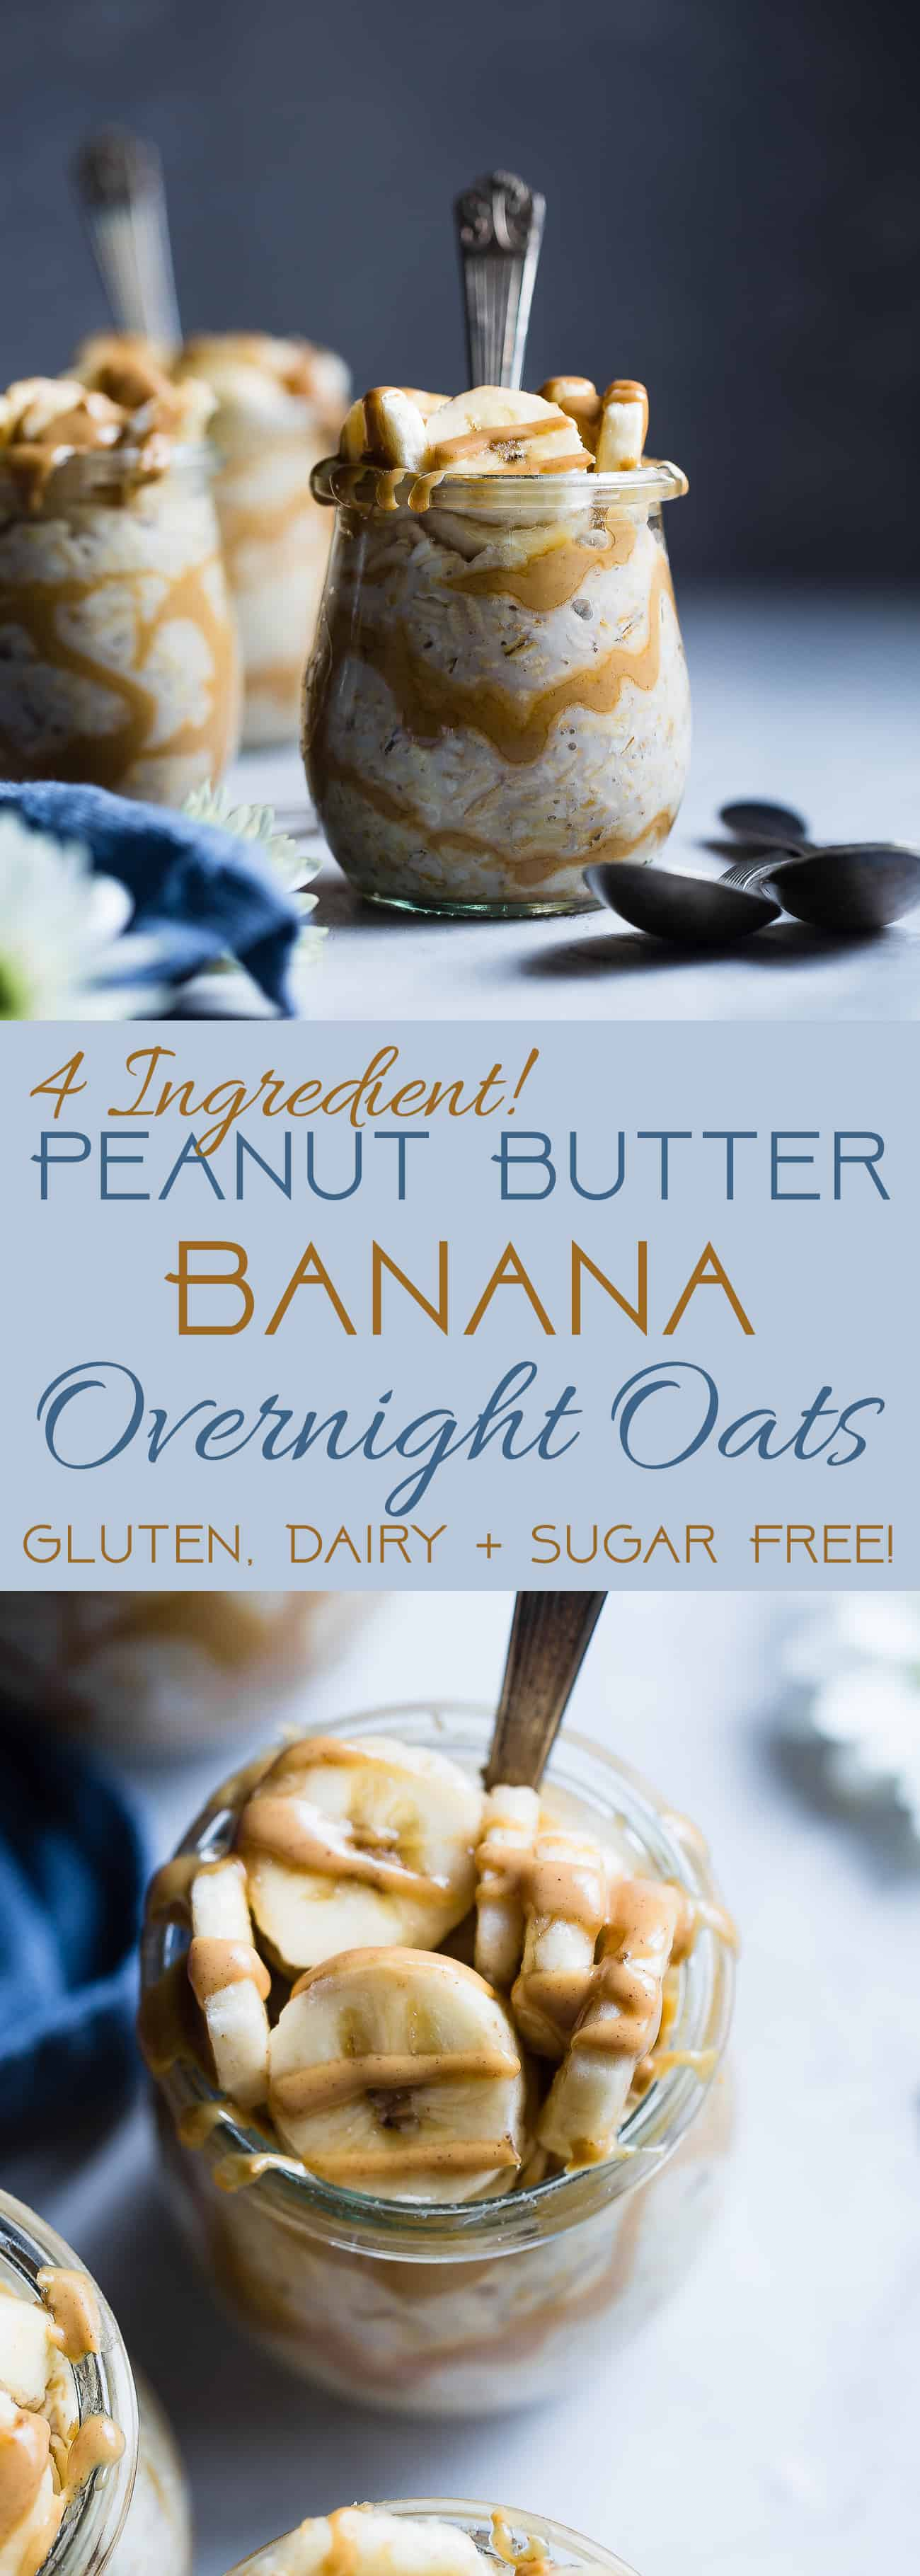 Banana Peanut Butter Overnight Oats -This make ahead, veganovernight oats recipe is a healthy, 4 ingredient way to start the day! dairy, sugar and, gluten free and kid friendly too! | #Foodfaithfitness | #breakfast #glutenfree #kidfriendly #overnightoats #peanutbutter